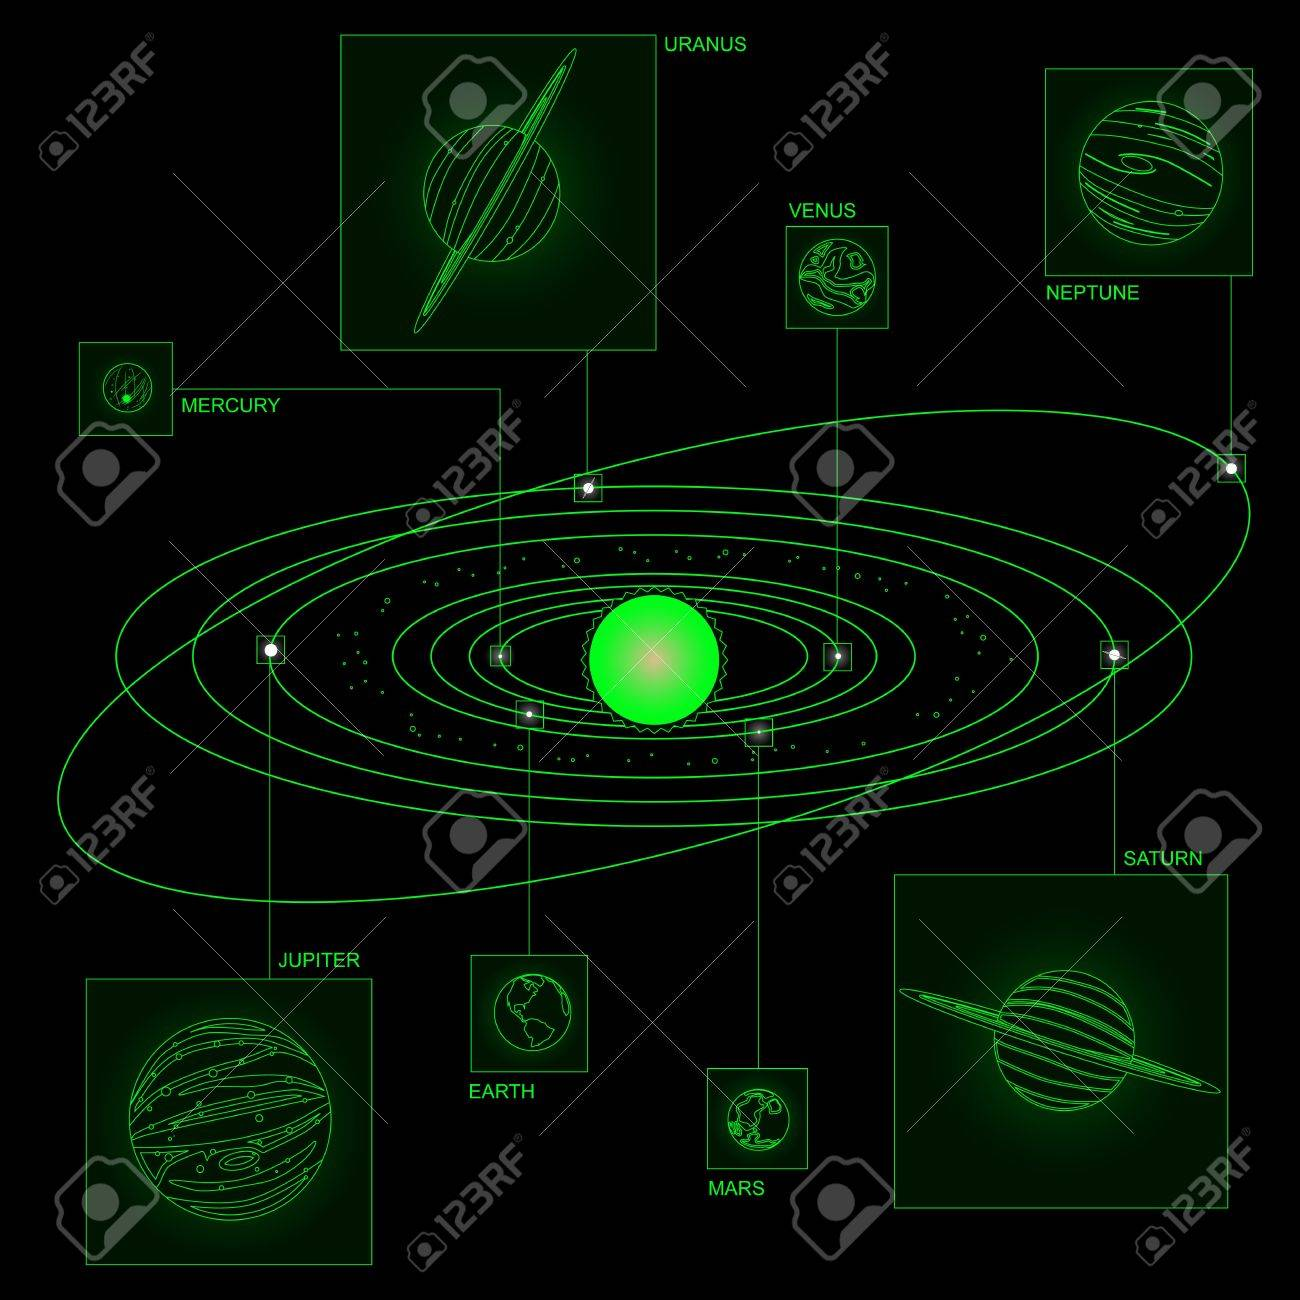 Fine Core Switch Diagram Small Pit Bike Wiring Regular Dimarzio Wiring Bulldog Security Diagrams Old Fender S1 Switch Wiring Diagram GrayDi Marizo Solar System Diagram In Wireframe Style Royalty Free Cliparts ..